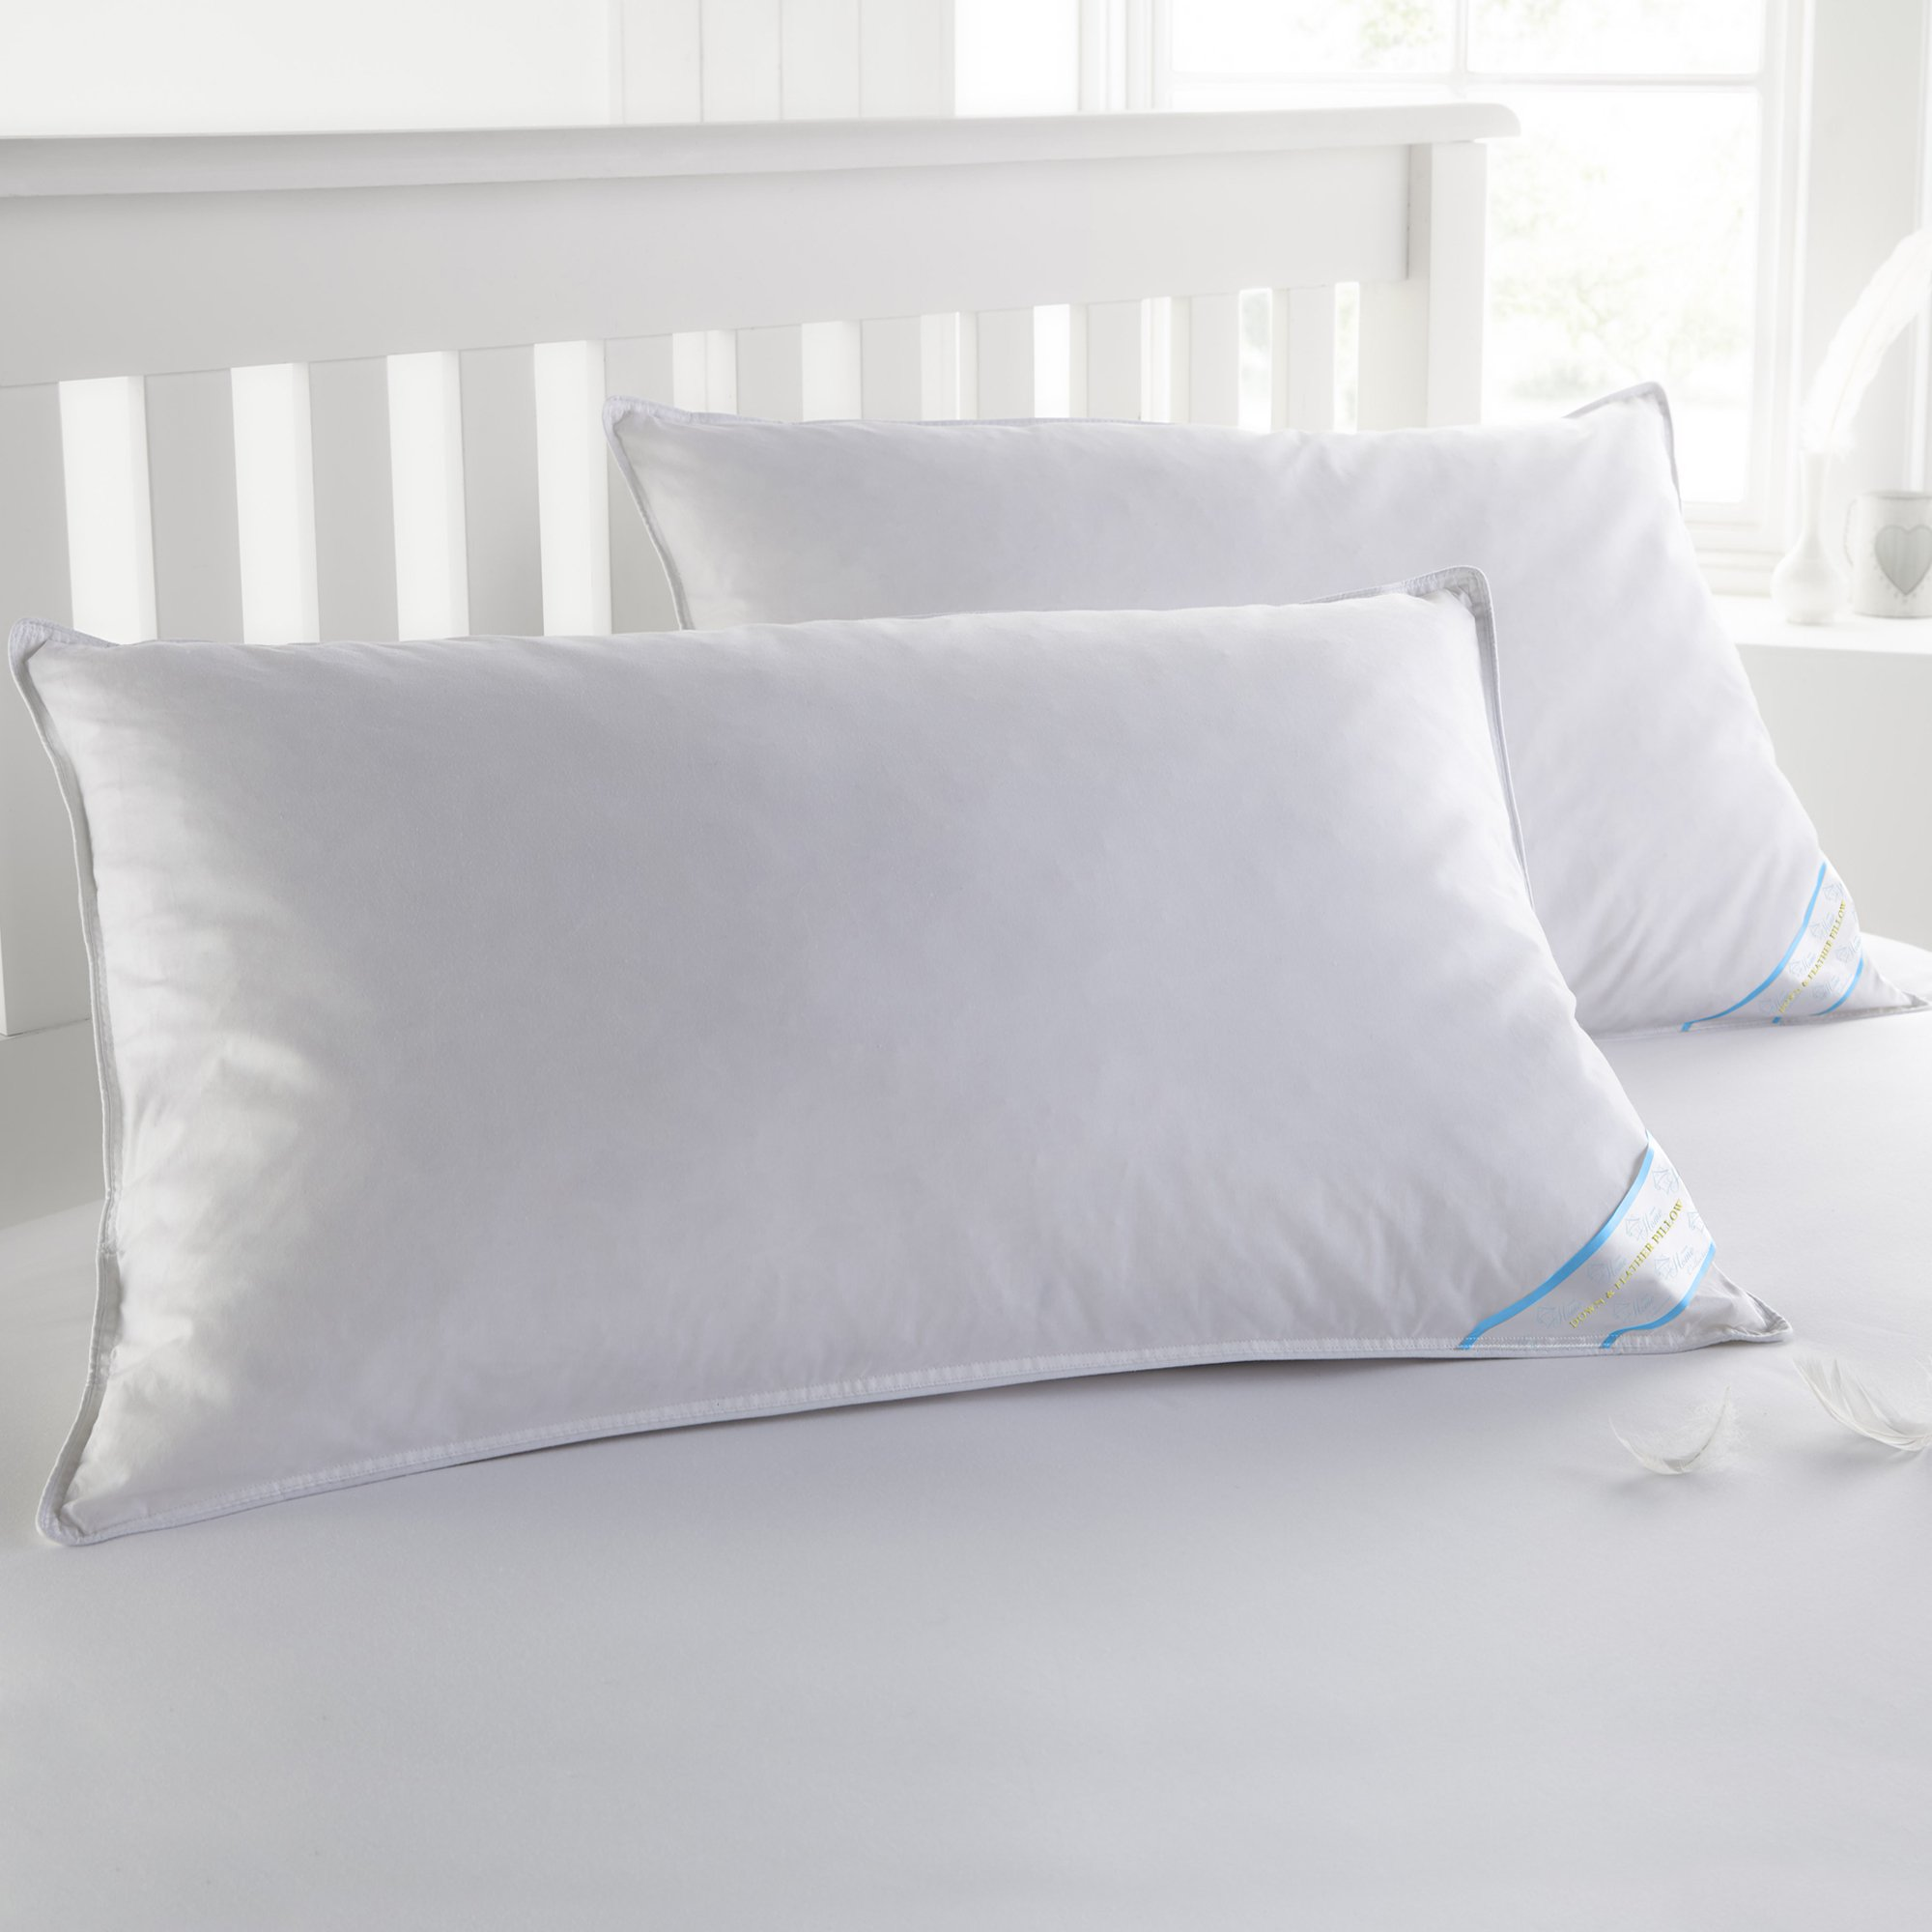 Sweet Home Collection 2 Pack Soft Down and Feather Pillow, 20'' x 36'' King, White